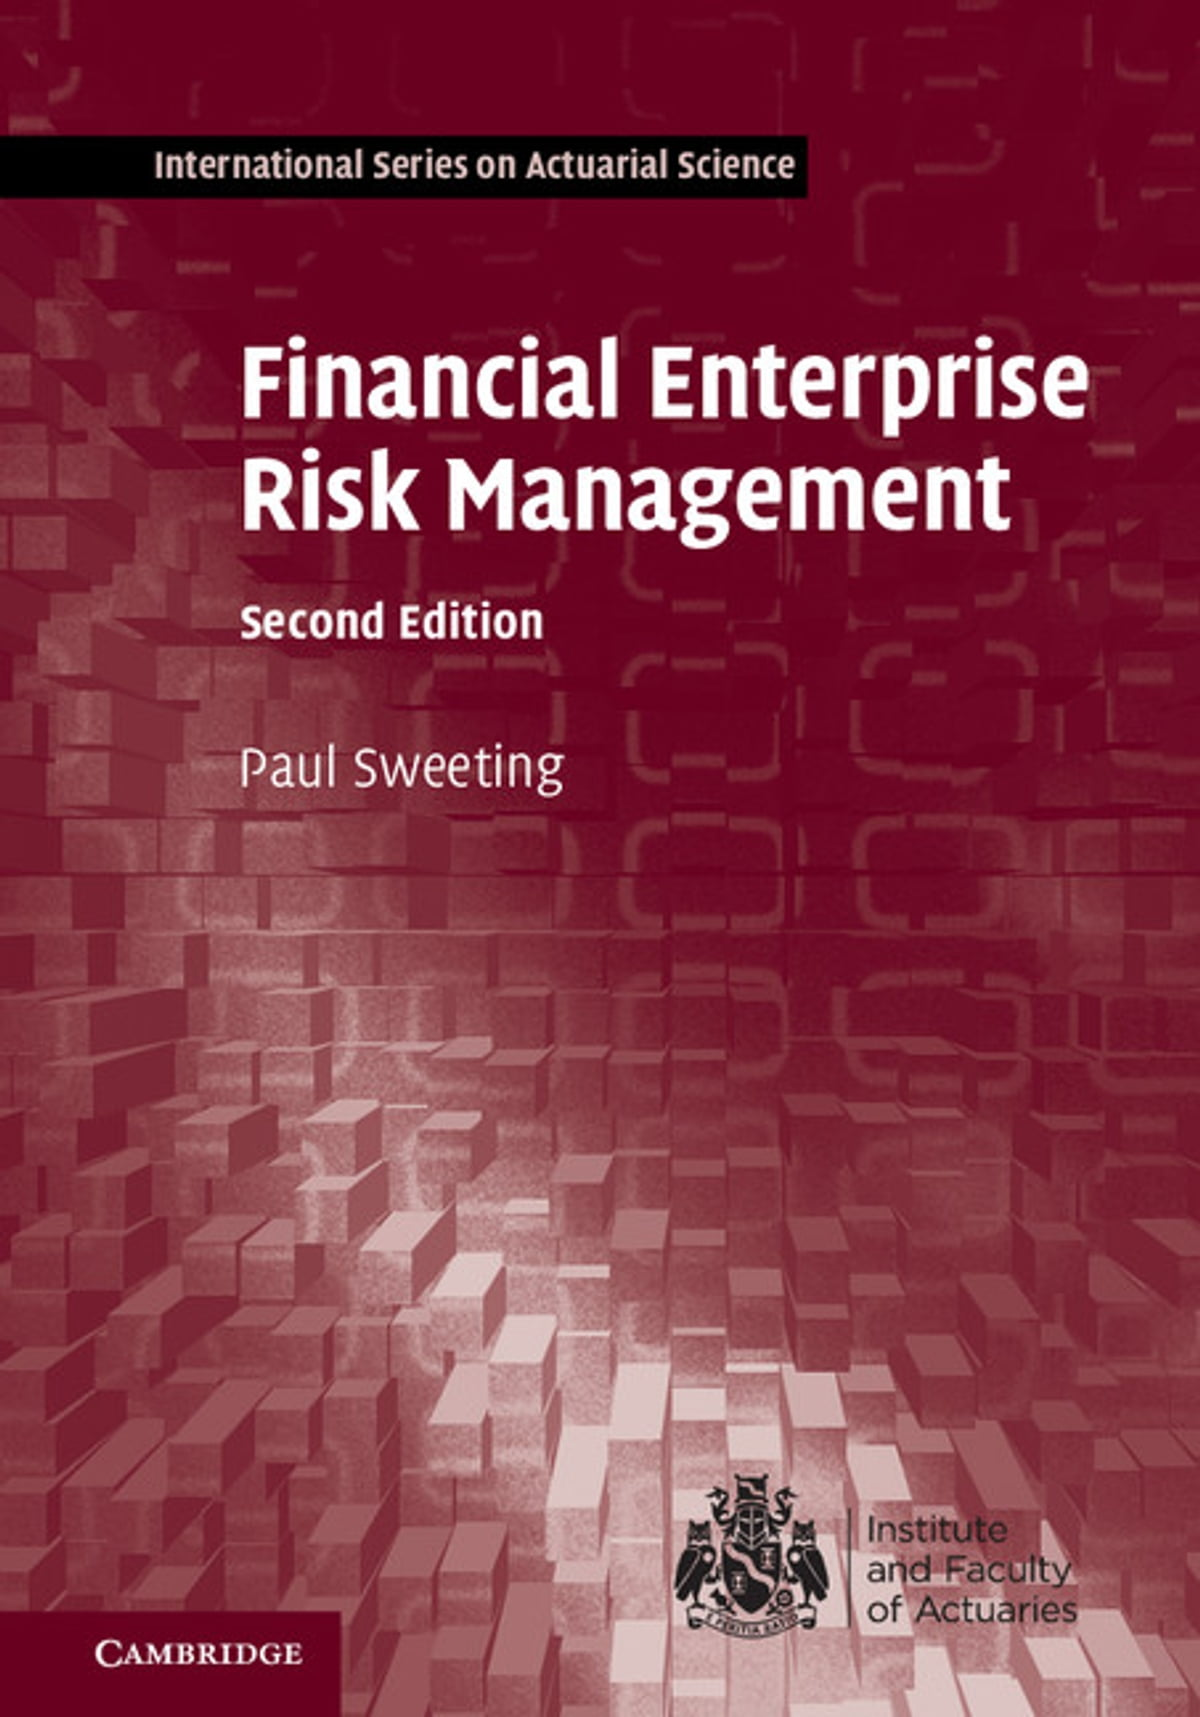 financial enterprise risk management by paul sweeting free download